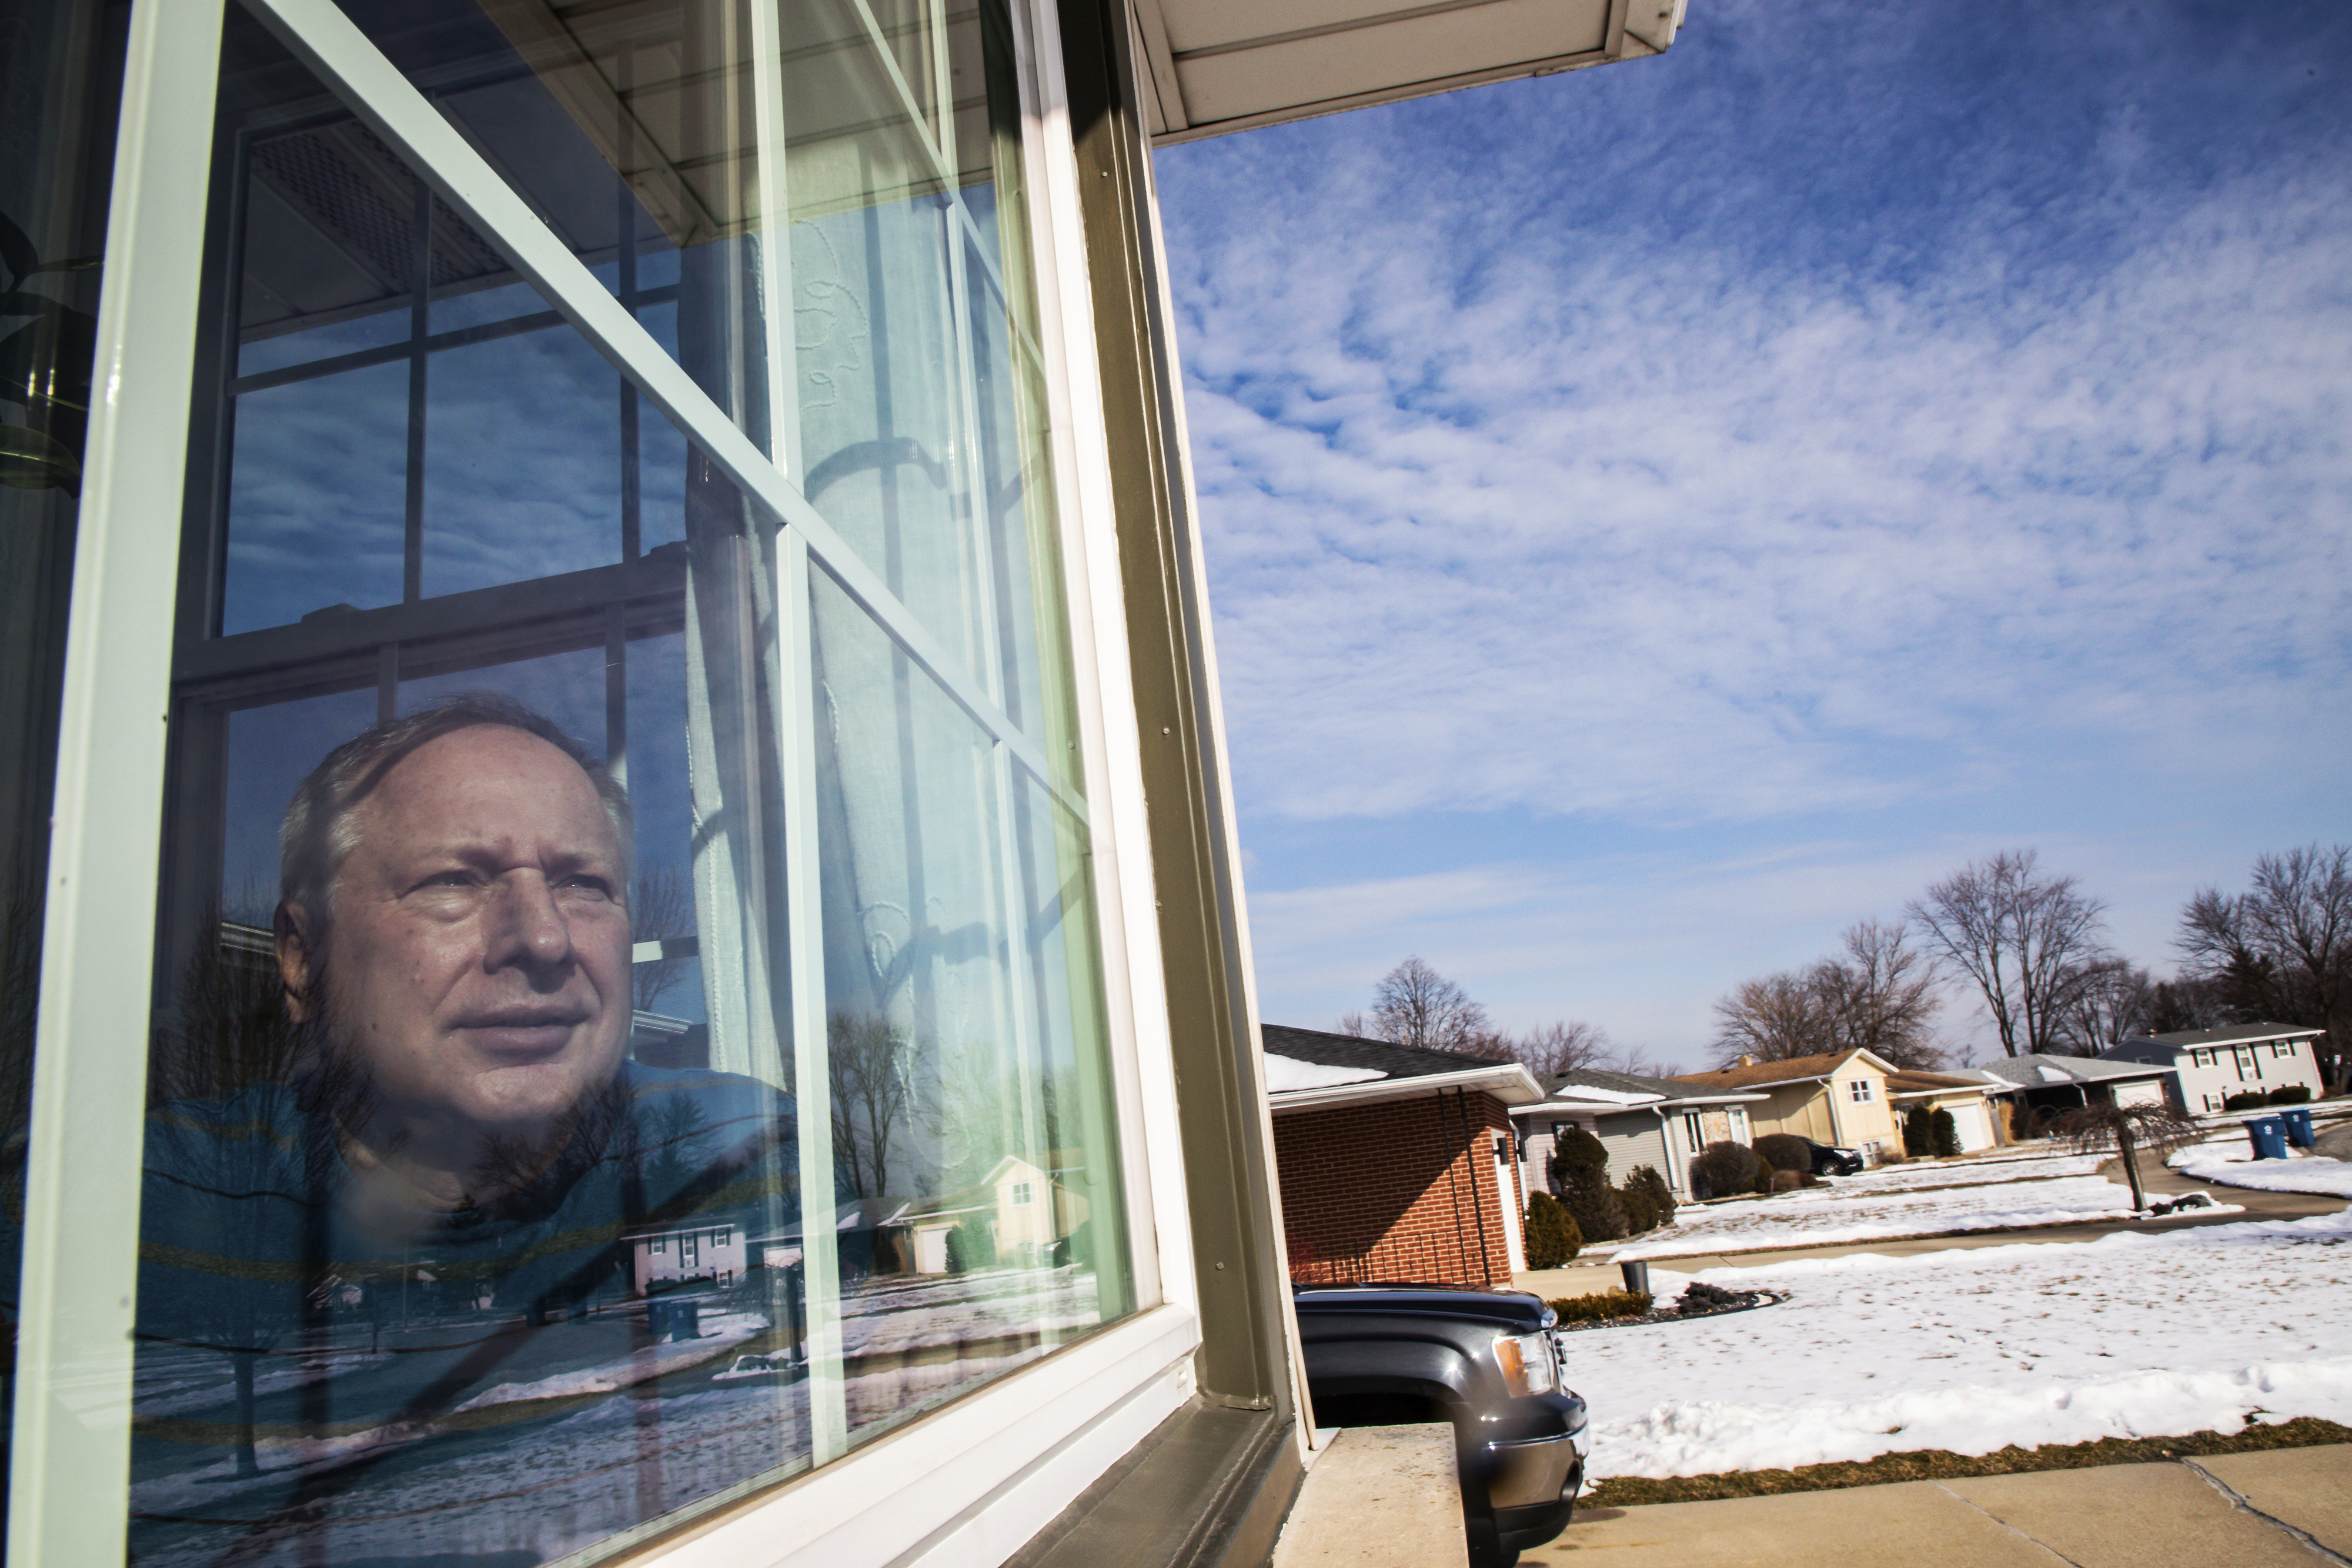 In this Feb. 11, 2020, photo, Ken Zurek, 63, poses for a photo at his home in Highland, Ind. Zurek and his wife arrived in China days before news broke of the coronavirus. They cut their trip short because of the virus and decided to self quarantine themselves in their Highland home for 15 days, just as an extra precaution.